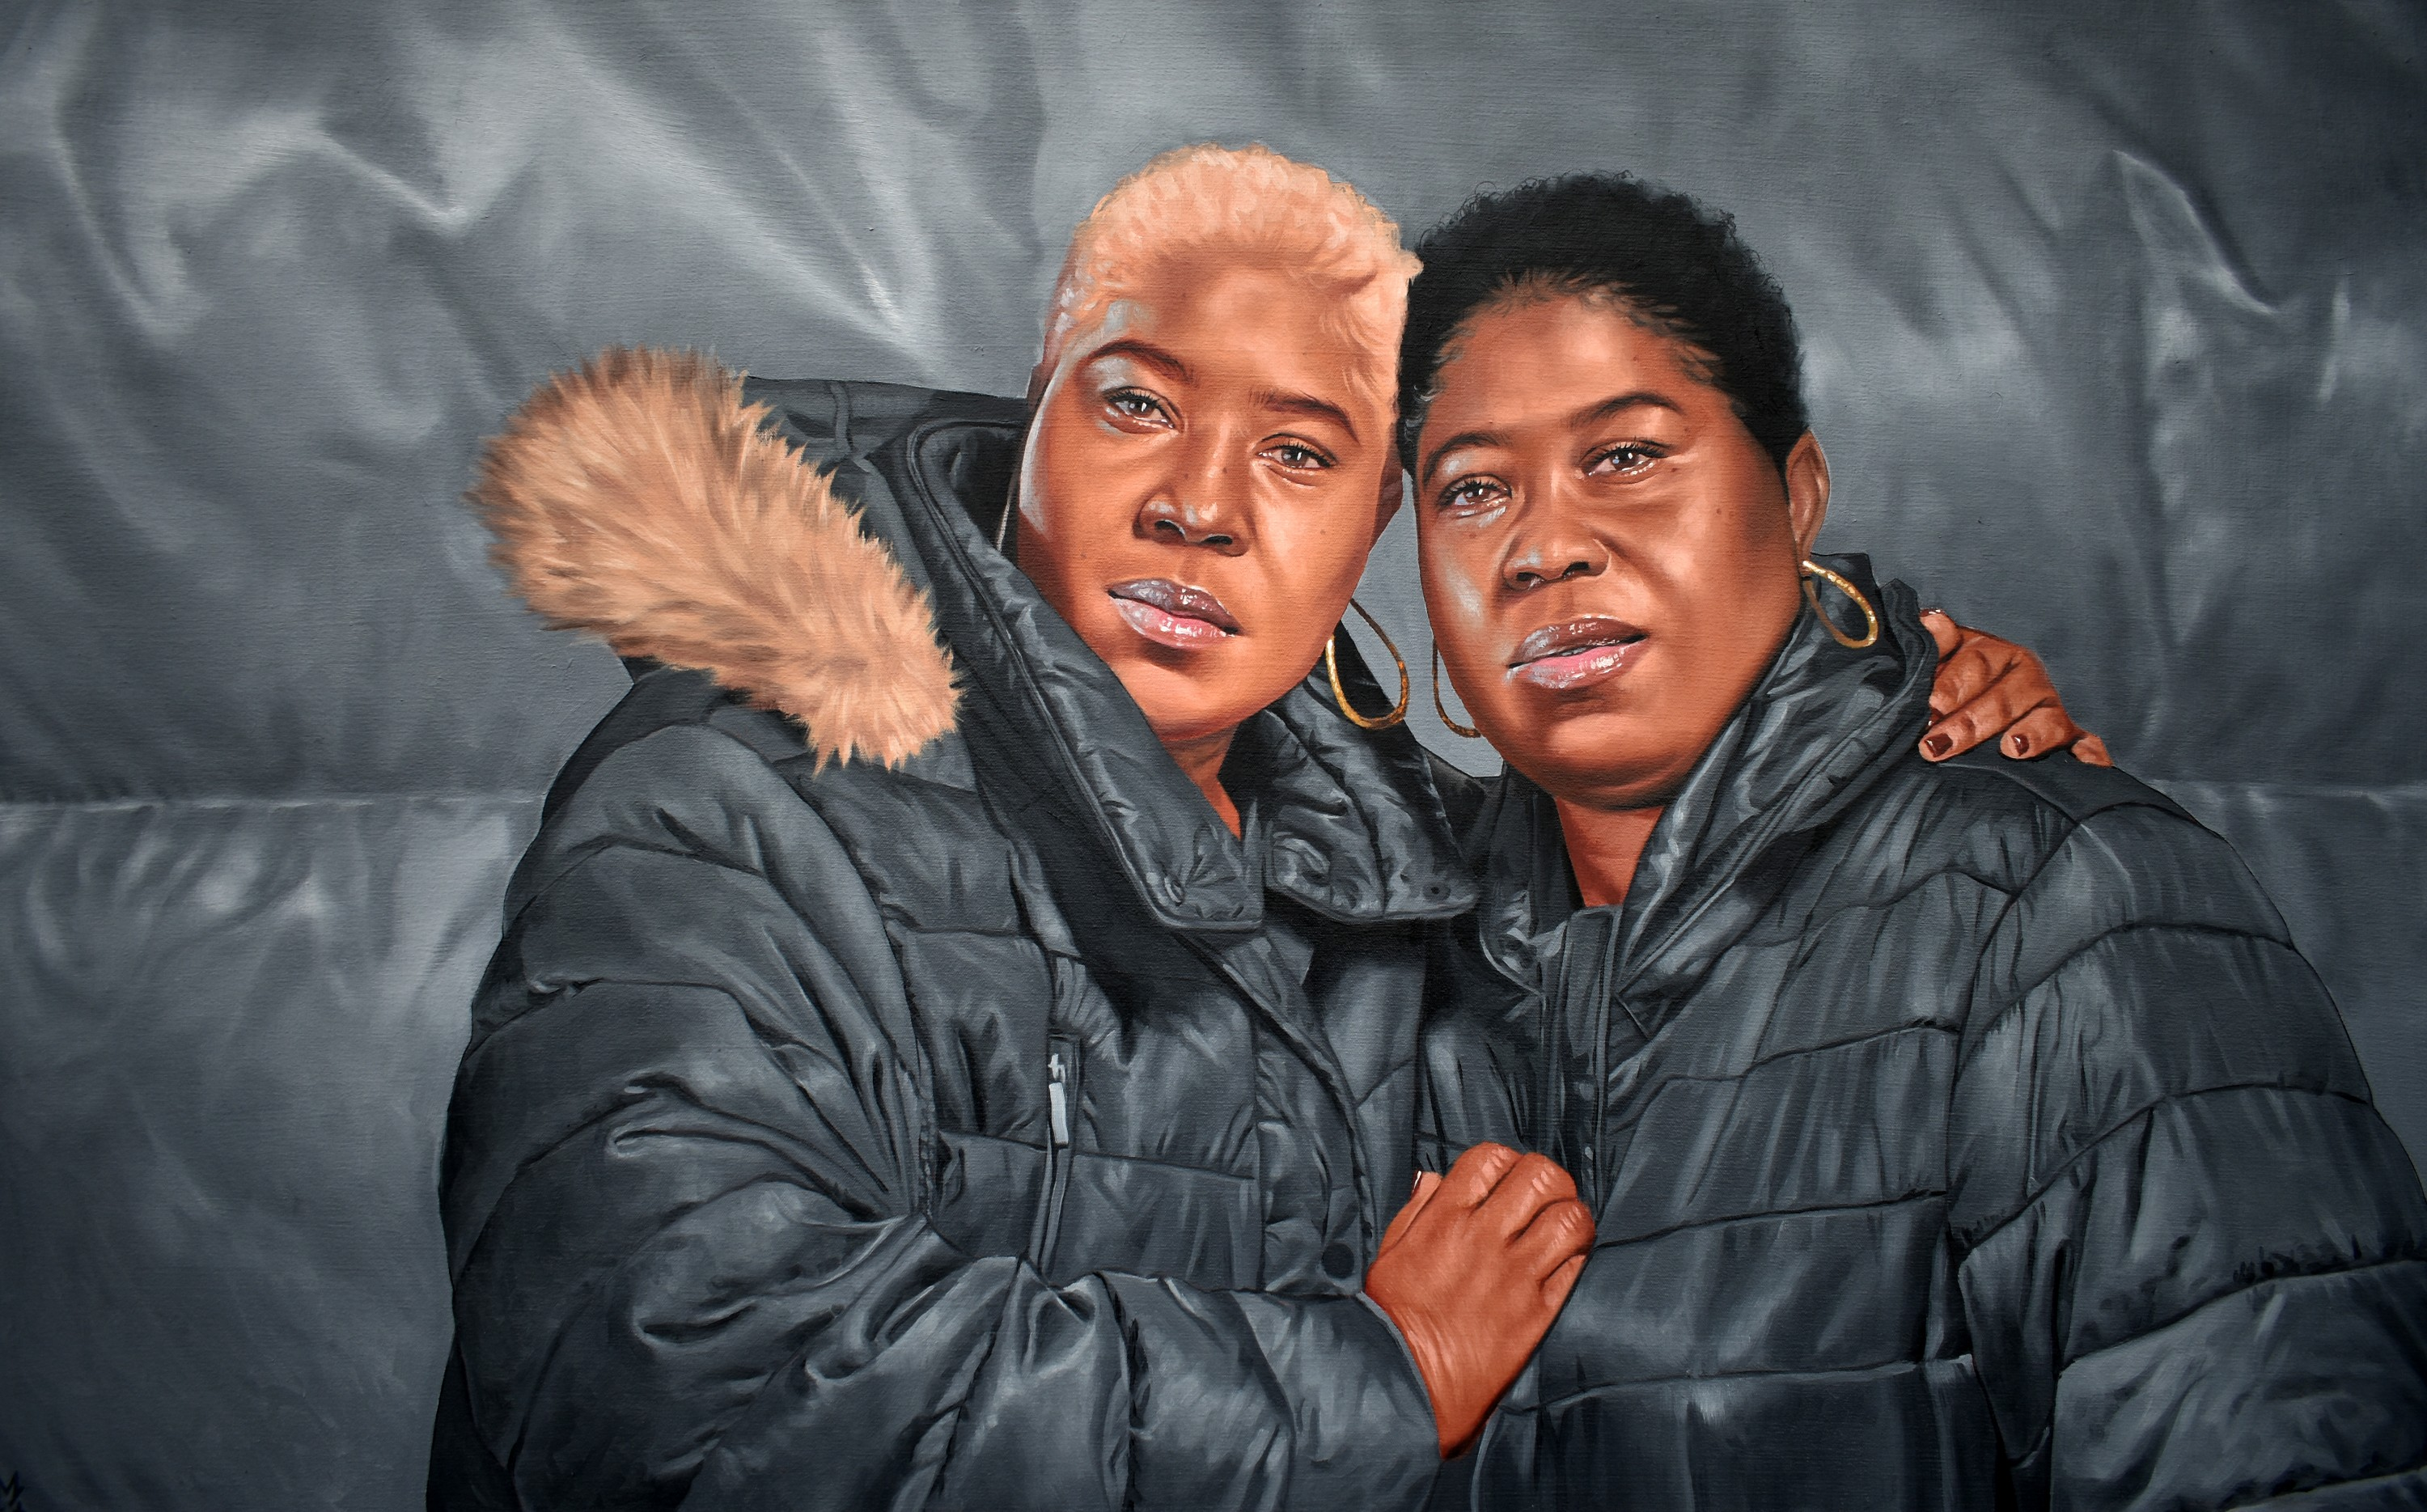 Painting of two women with one embracing the other